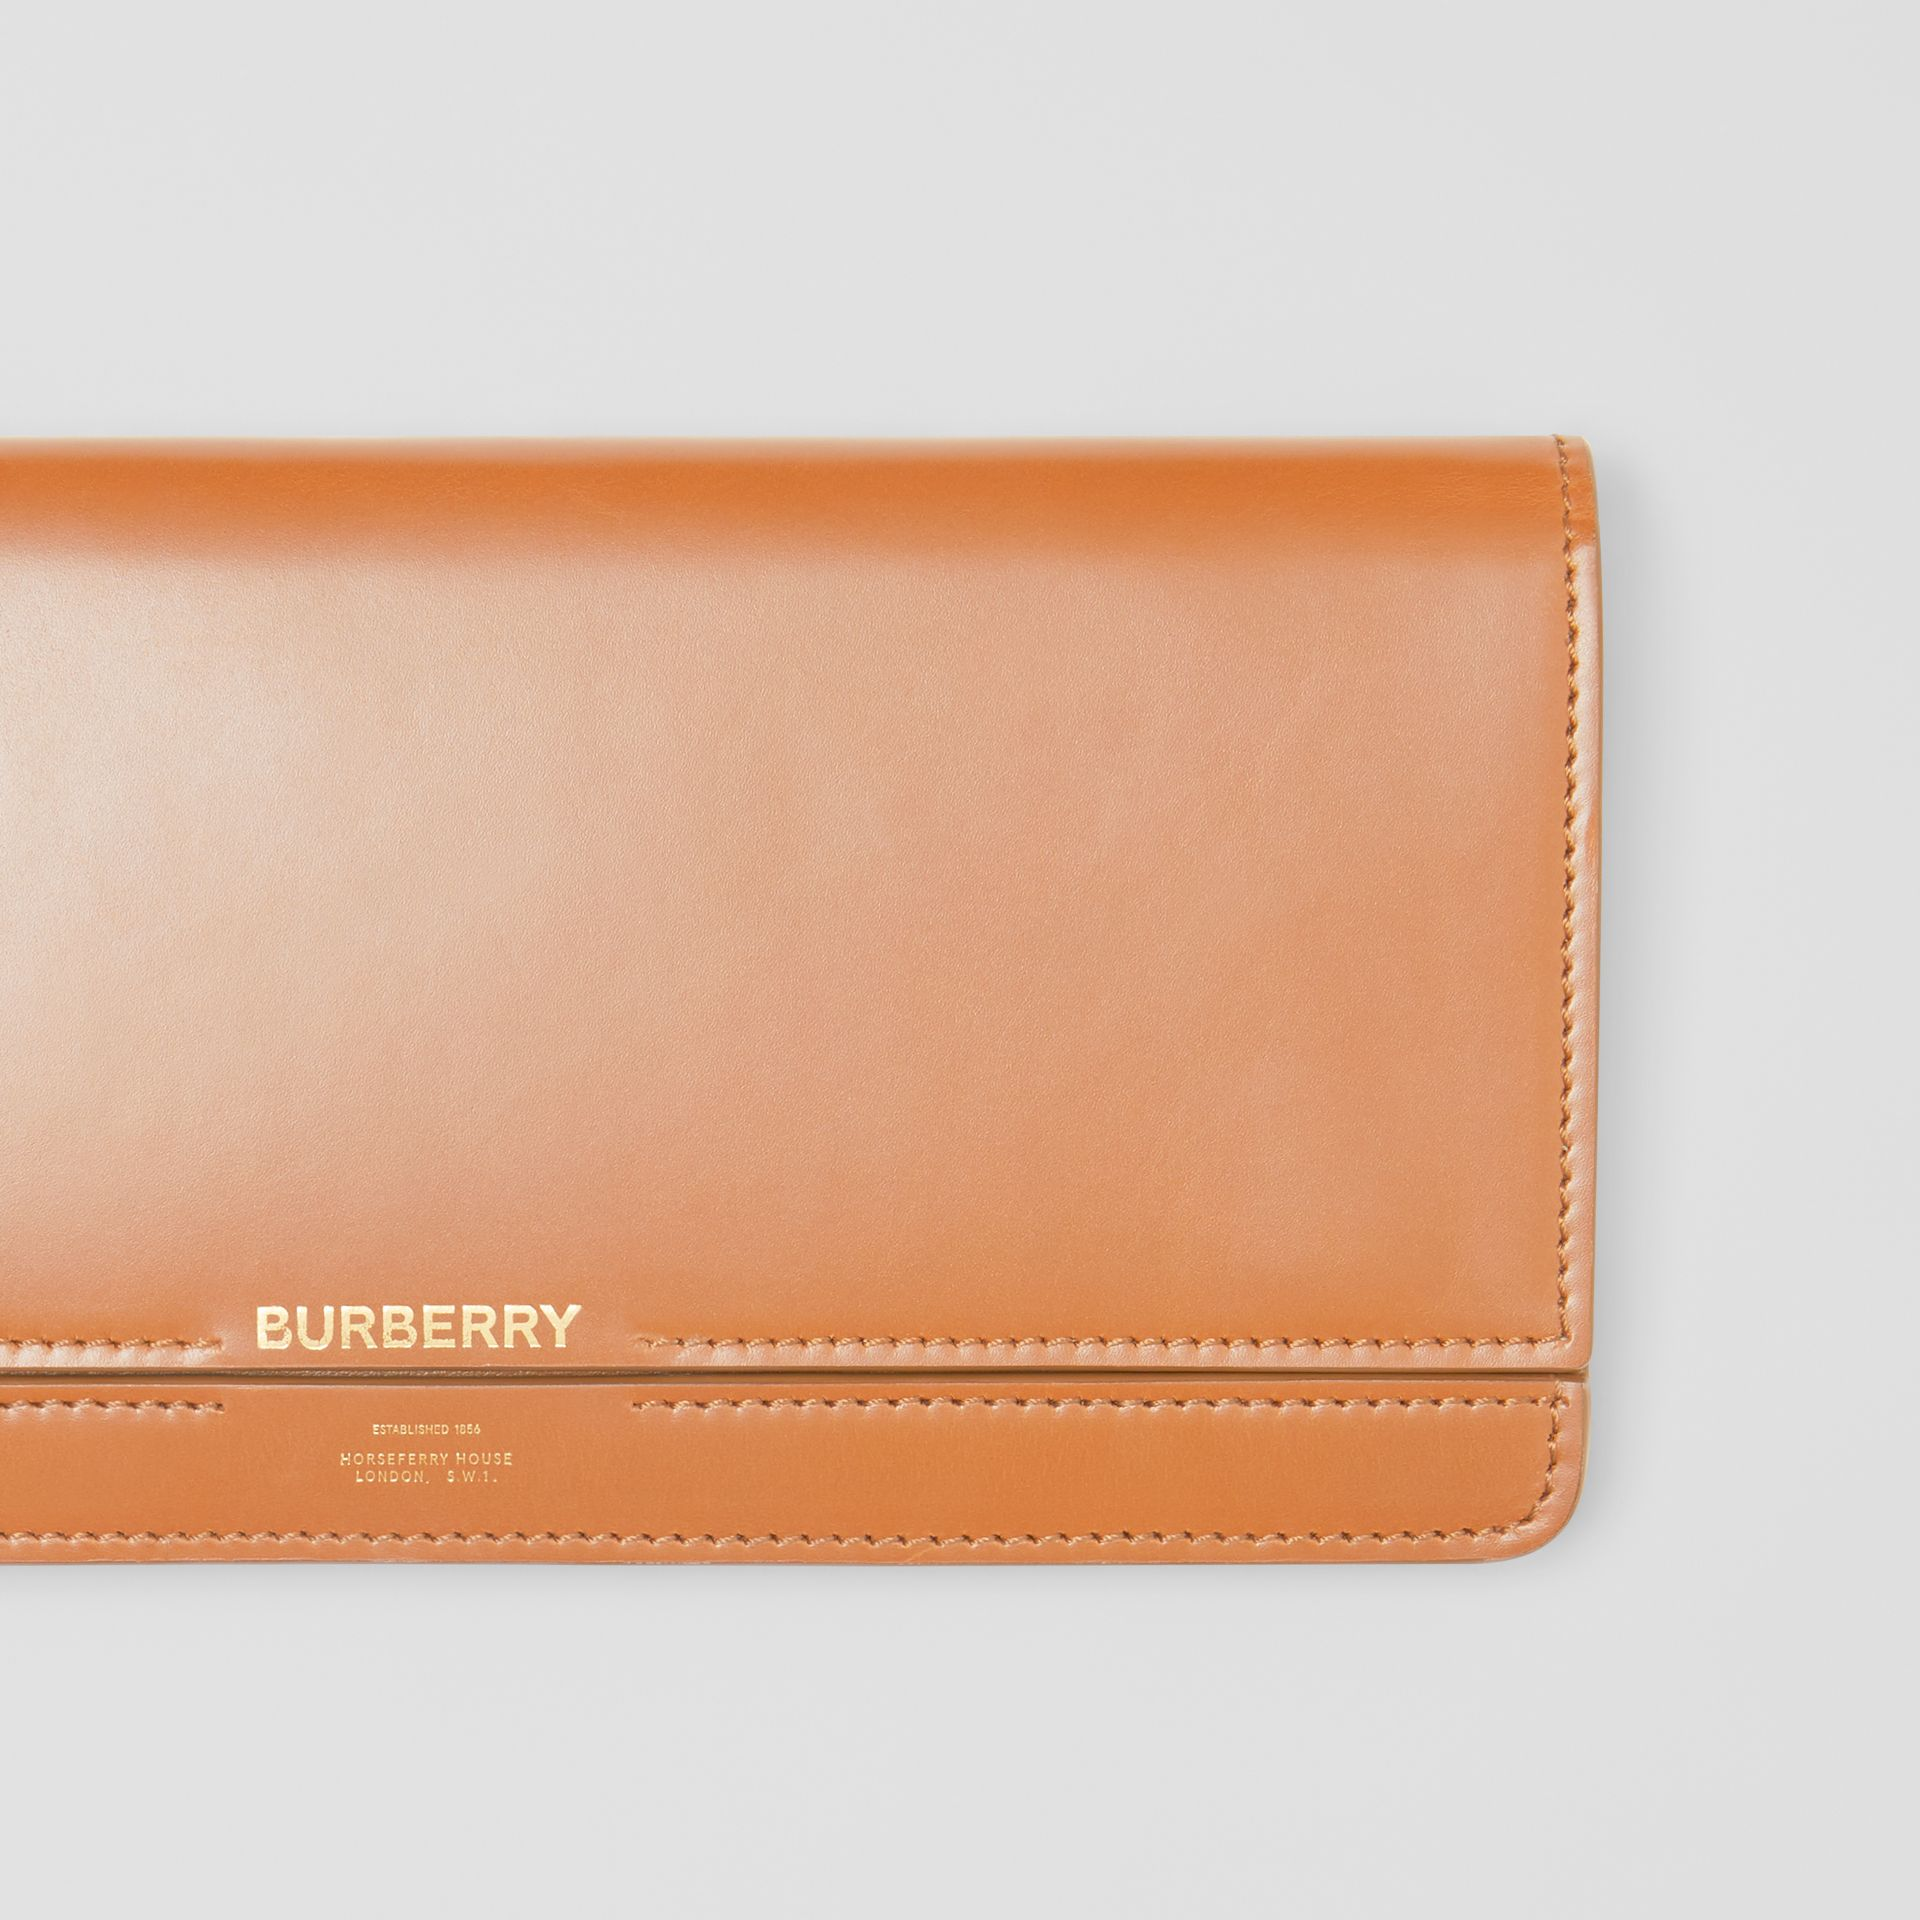 Horseferry Print Leather Bag with Detachable Strap in Nutmeg - Women | Burberry - gallery image 1